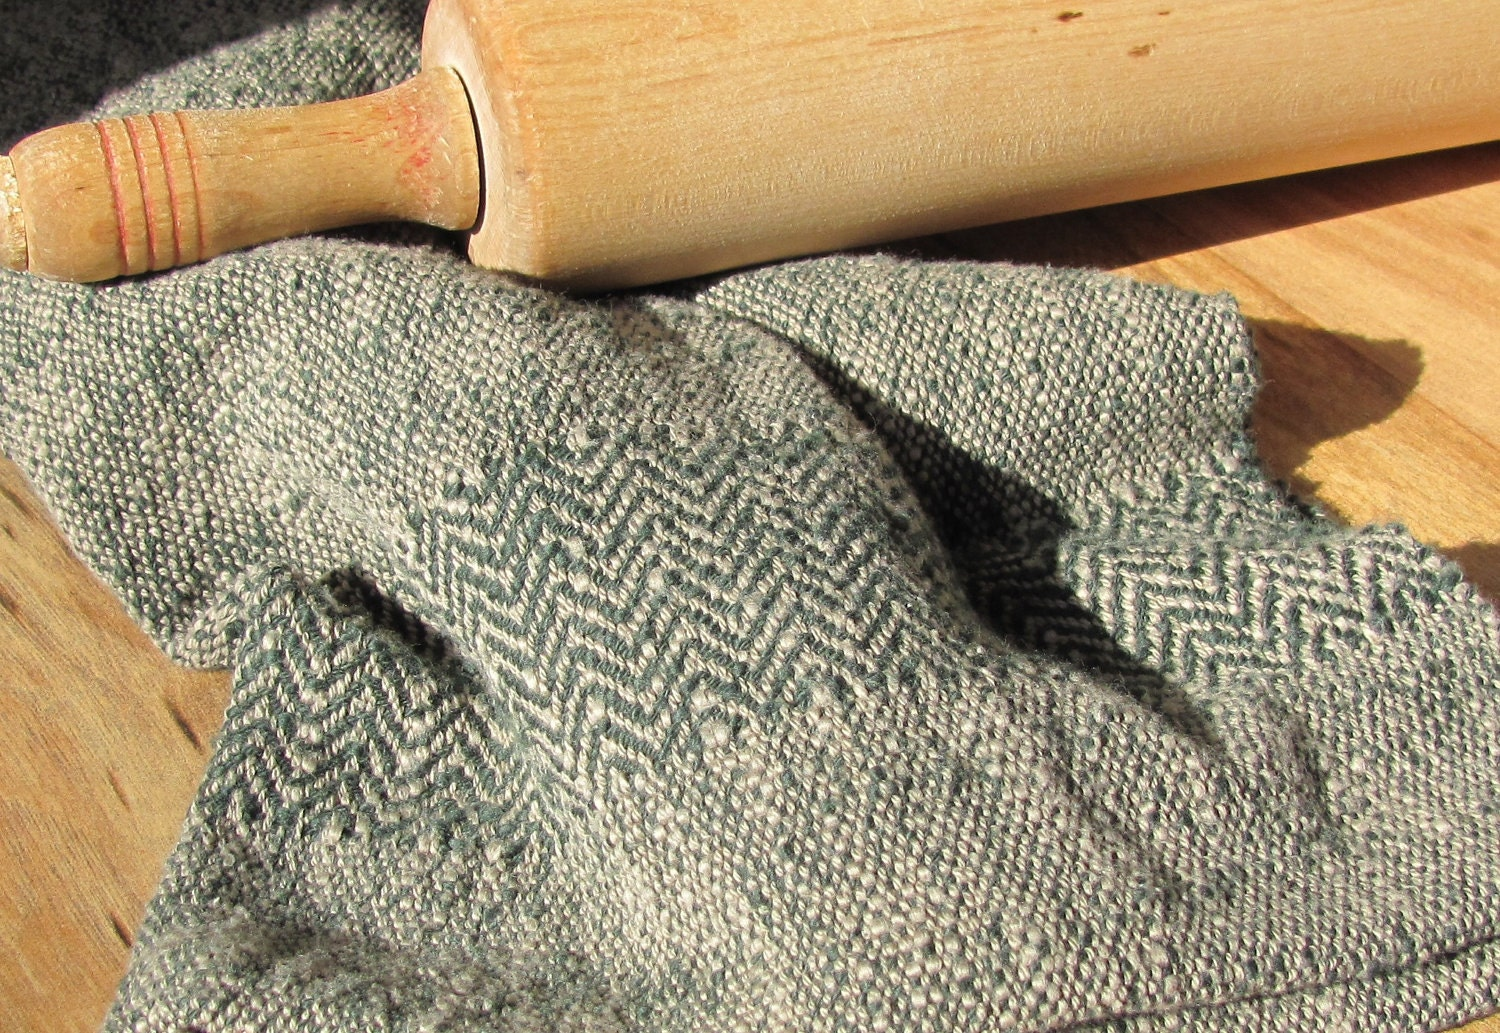 Cottage Kitchen Chef's Hand Towel, Handwoven Green & Khaki Cotton, Herringbone Twill Borders, Traditional Homestyle Cook, Gourmet, Mom - aclhandweaver